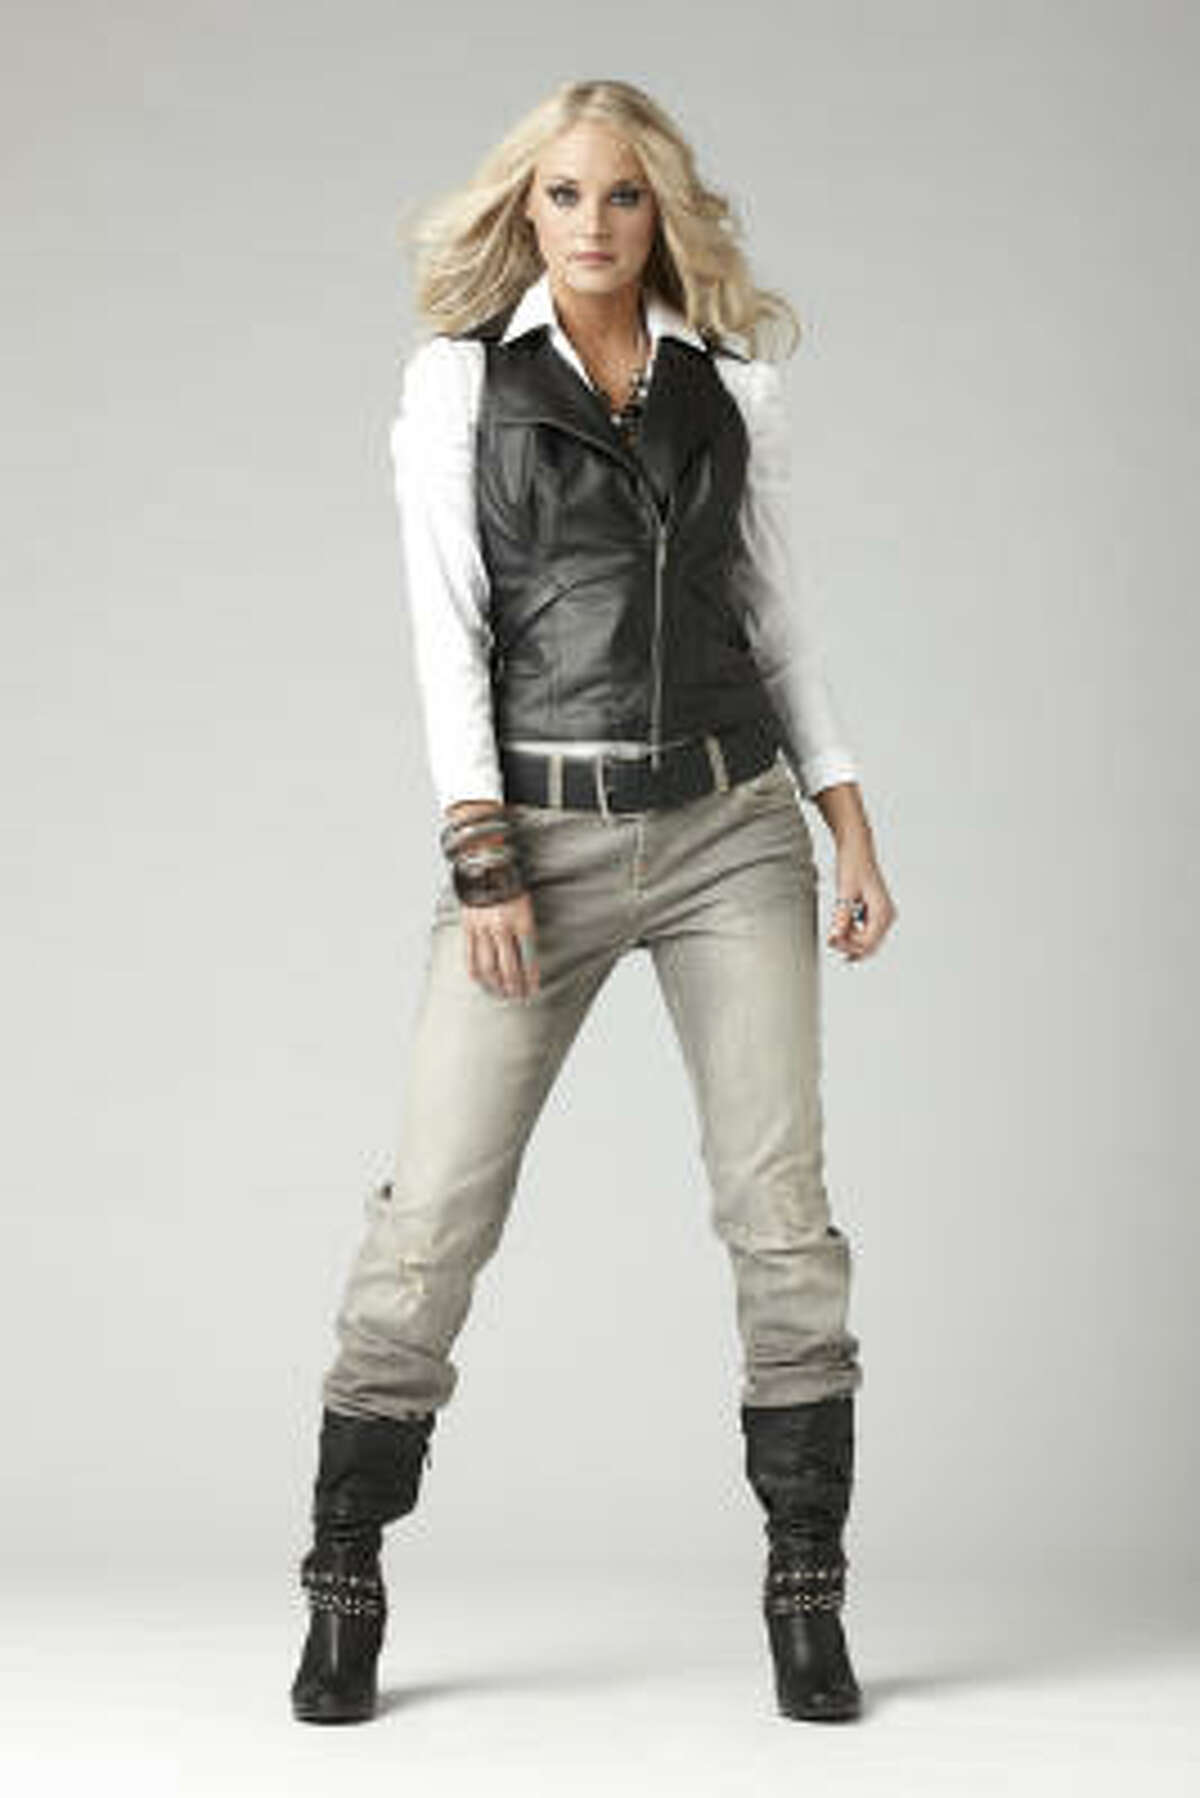 You can get this look from JCPenney. cutline: Bisou Bisou motorcycle vest, $49.99; Woven blouse, $24.99; and grey denim, $19.99. At JCPenney stores and www.jcp.com